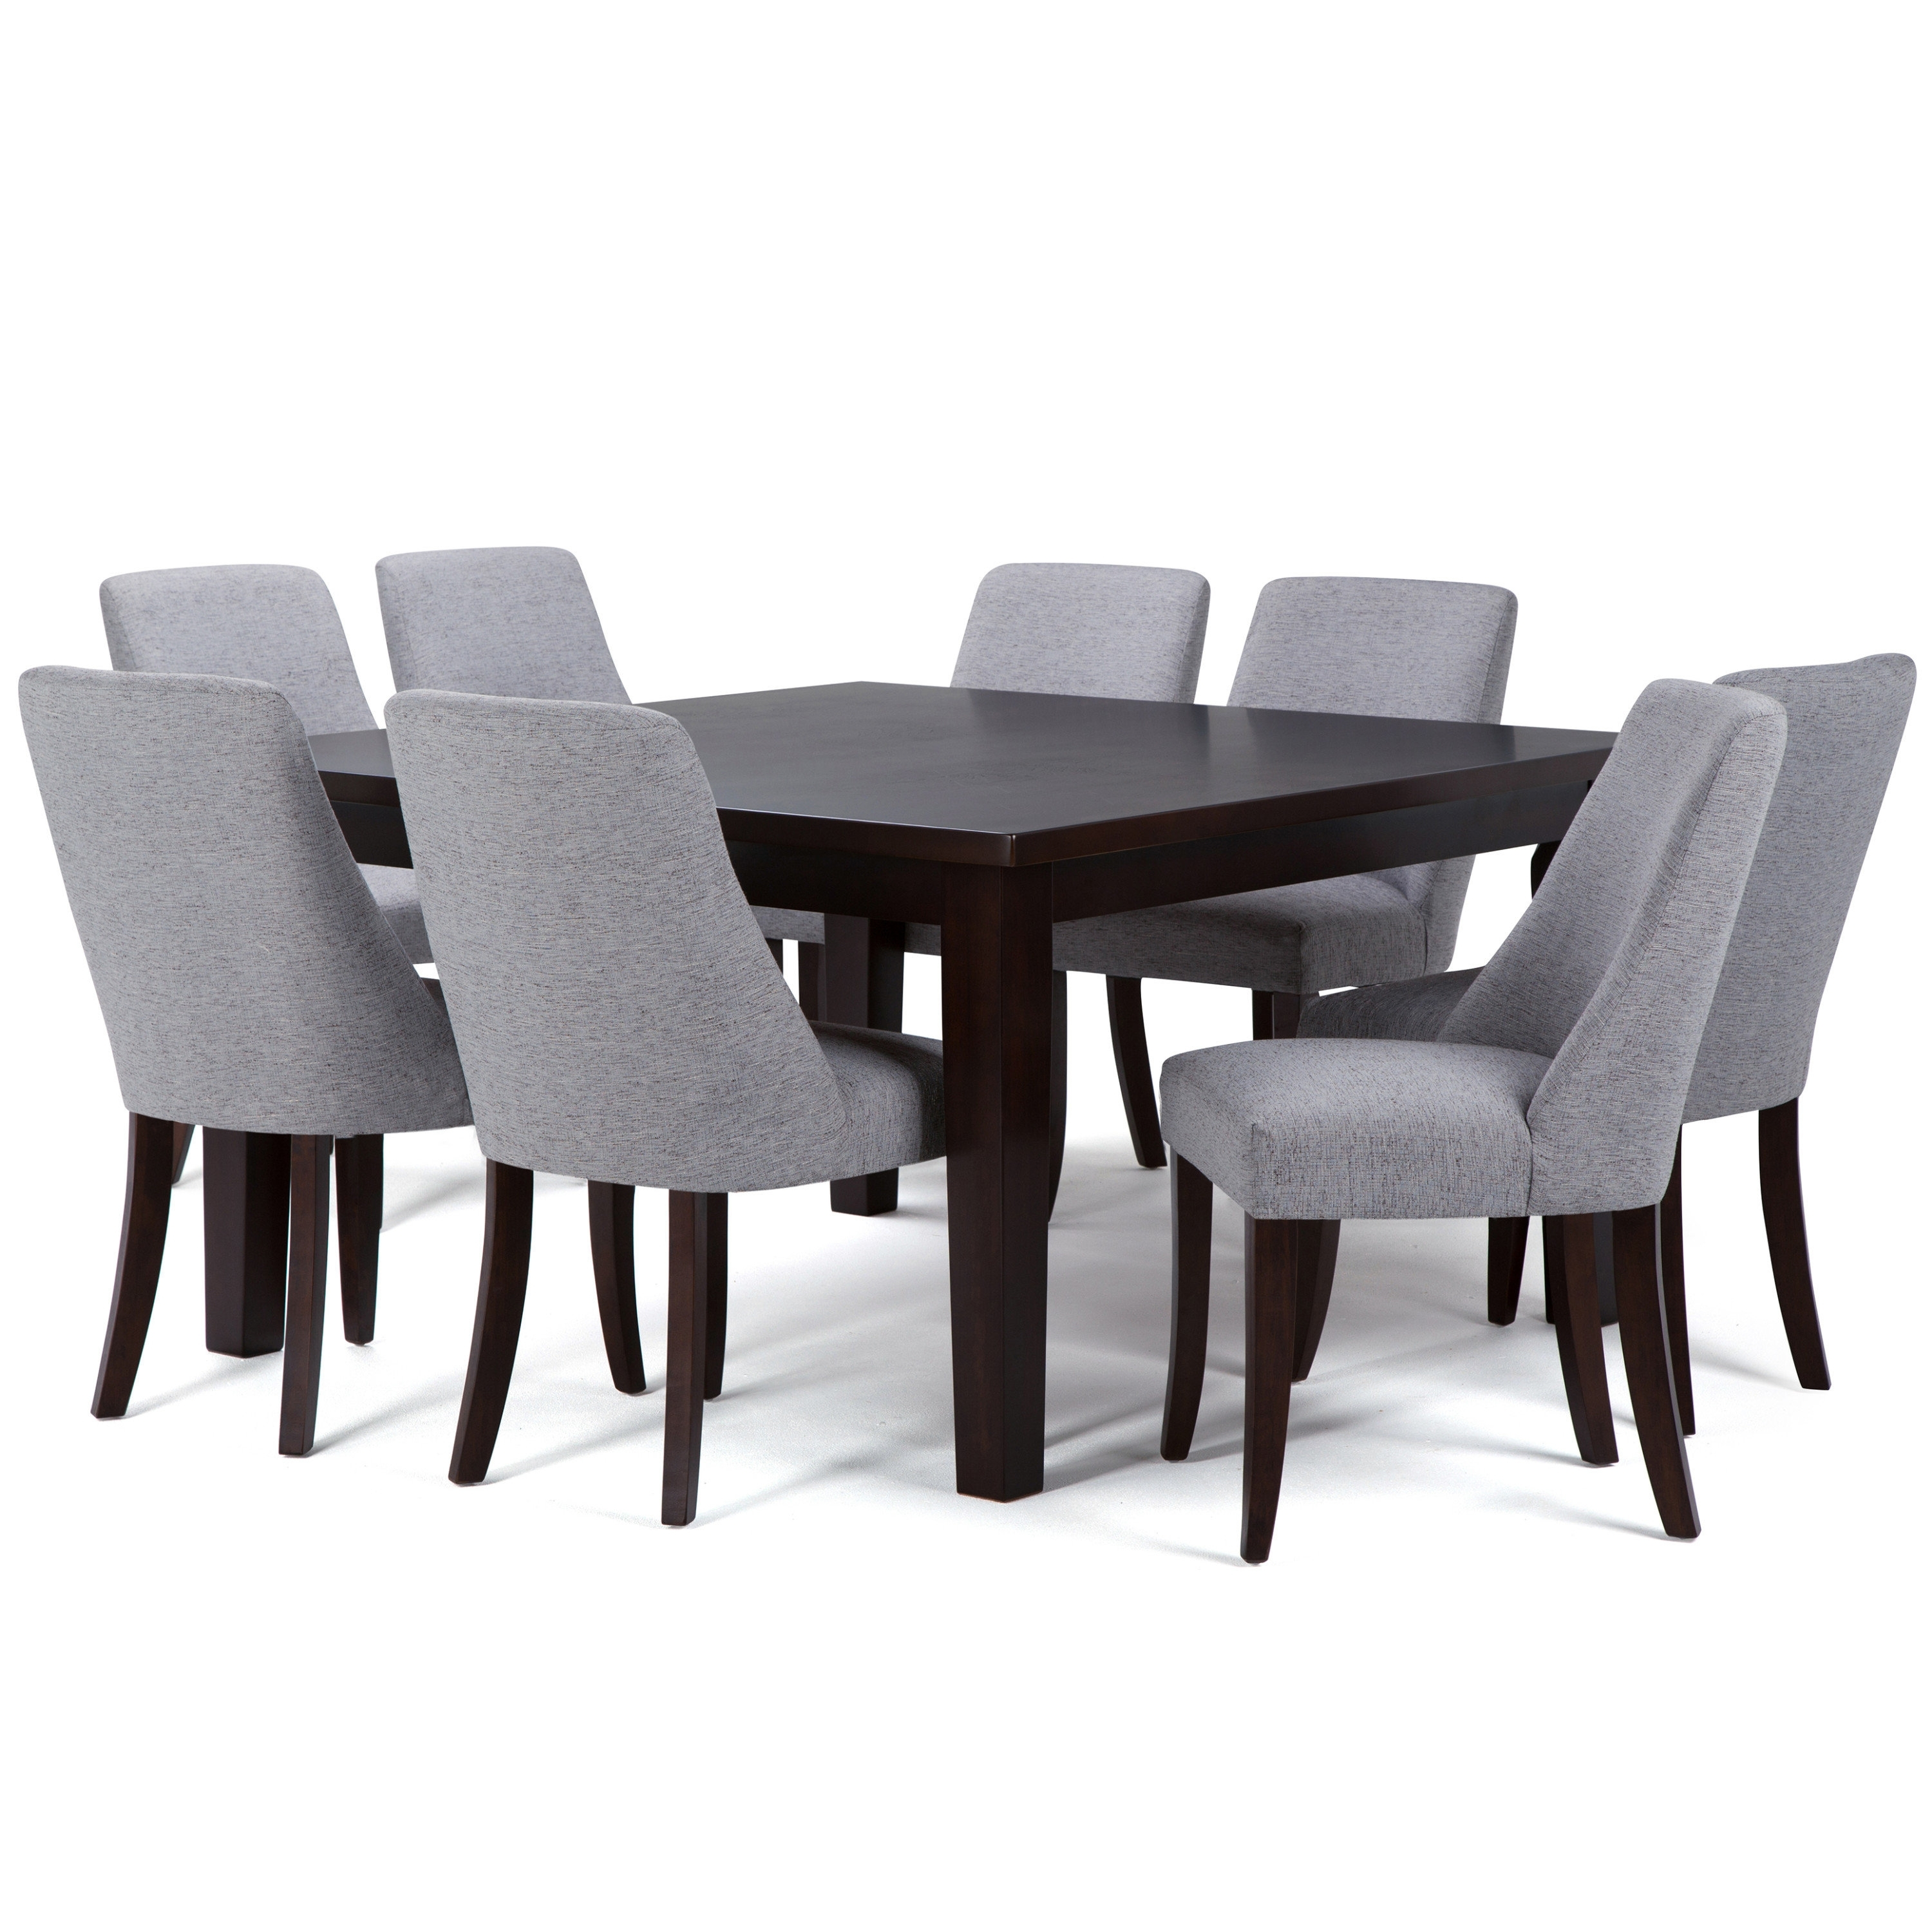 Simpli Home Walden 9 Piece Solid Wood Dining Set | Wayfair With Most Up To Date Walden Extension Dining Tables (View 3 of 20)